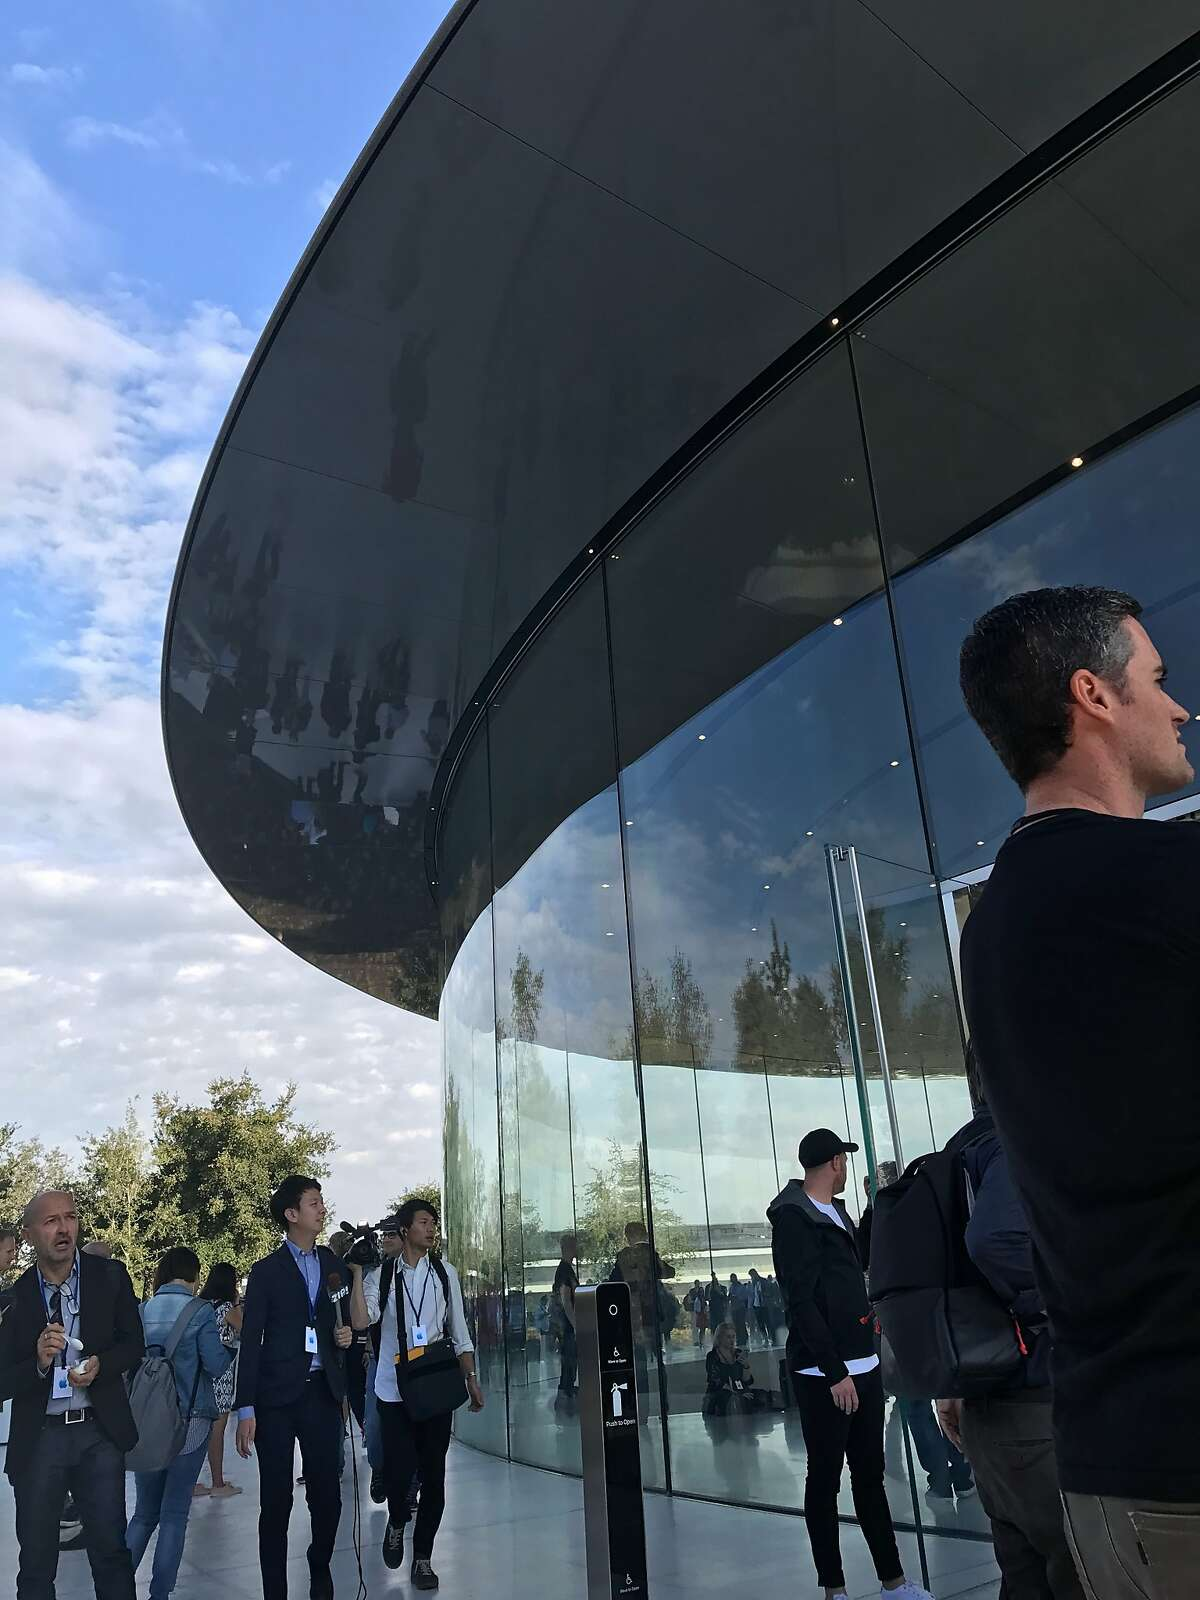 Scenes outside the Steve Jobs Theater on the Apple Park headquarters campus in Cupertino on Tuesday before the company reveals its latest iPhones and other products